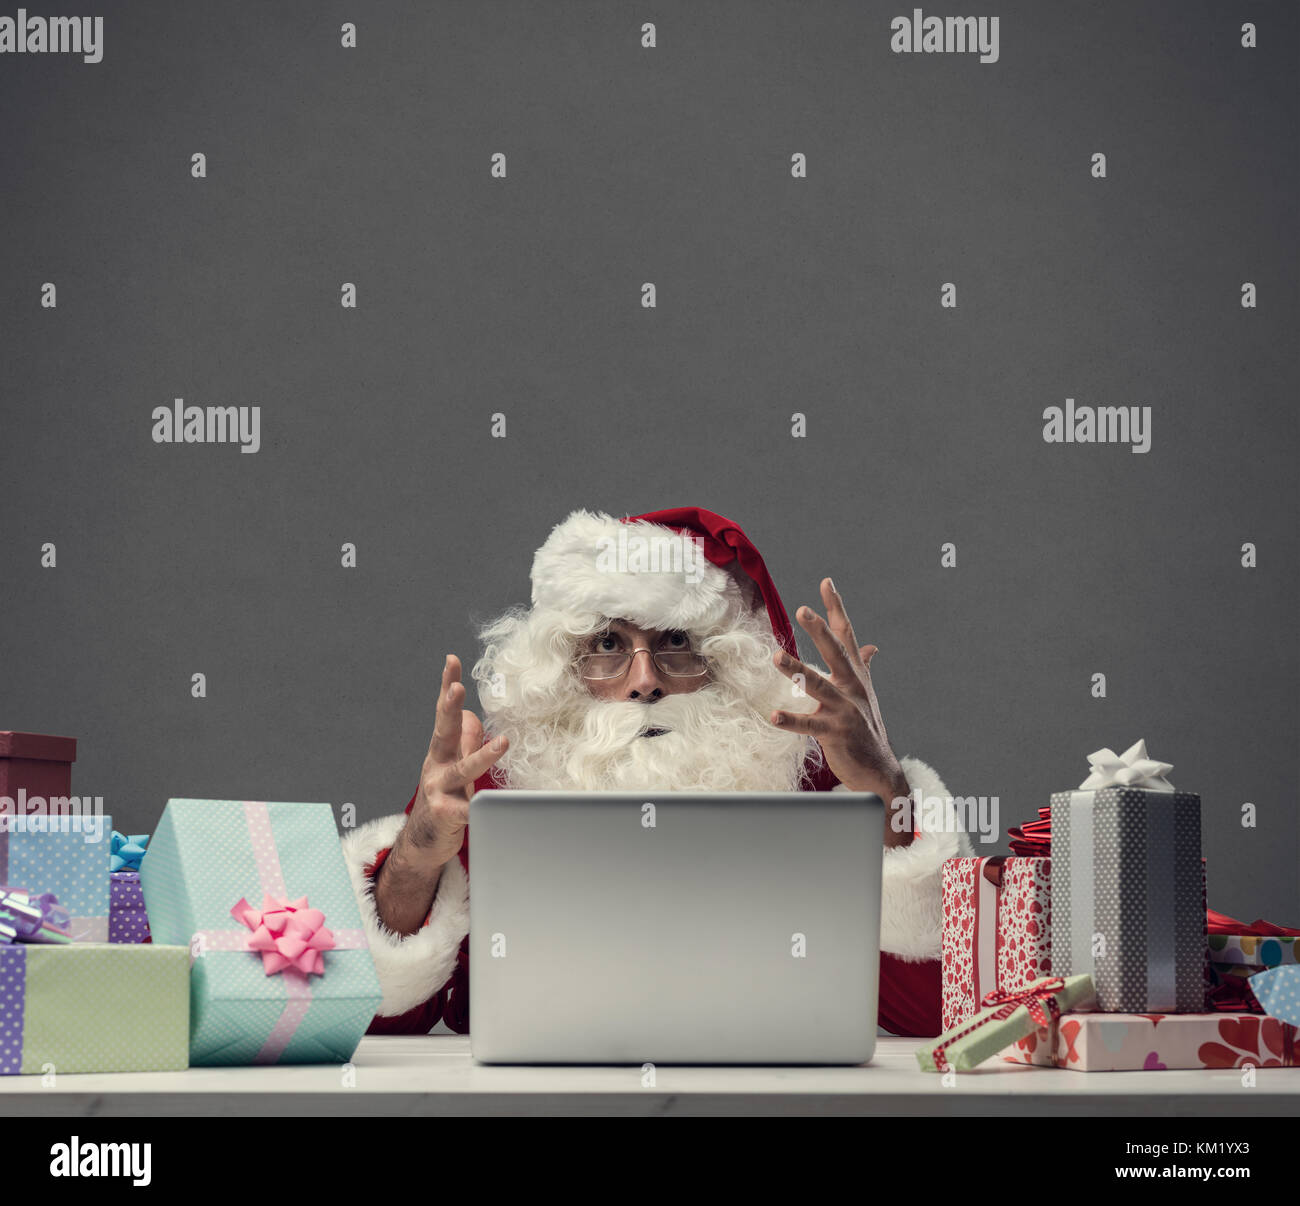 Angry frustrated Santa Claus yelling at the laptop on Christmas Eve: computer and connection problems - Stock Image